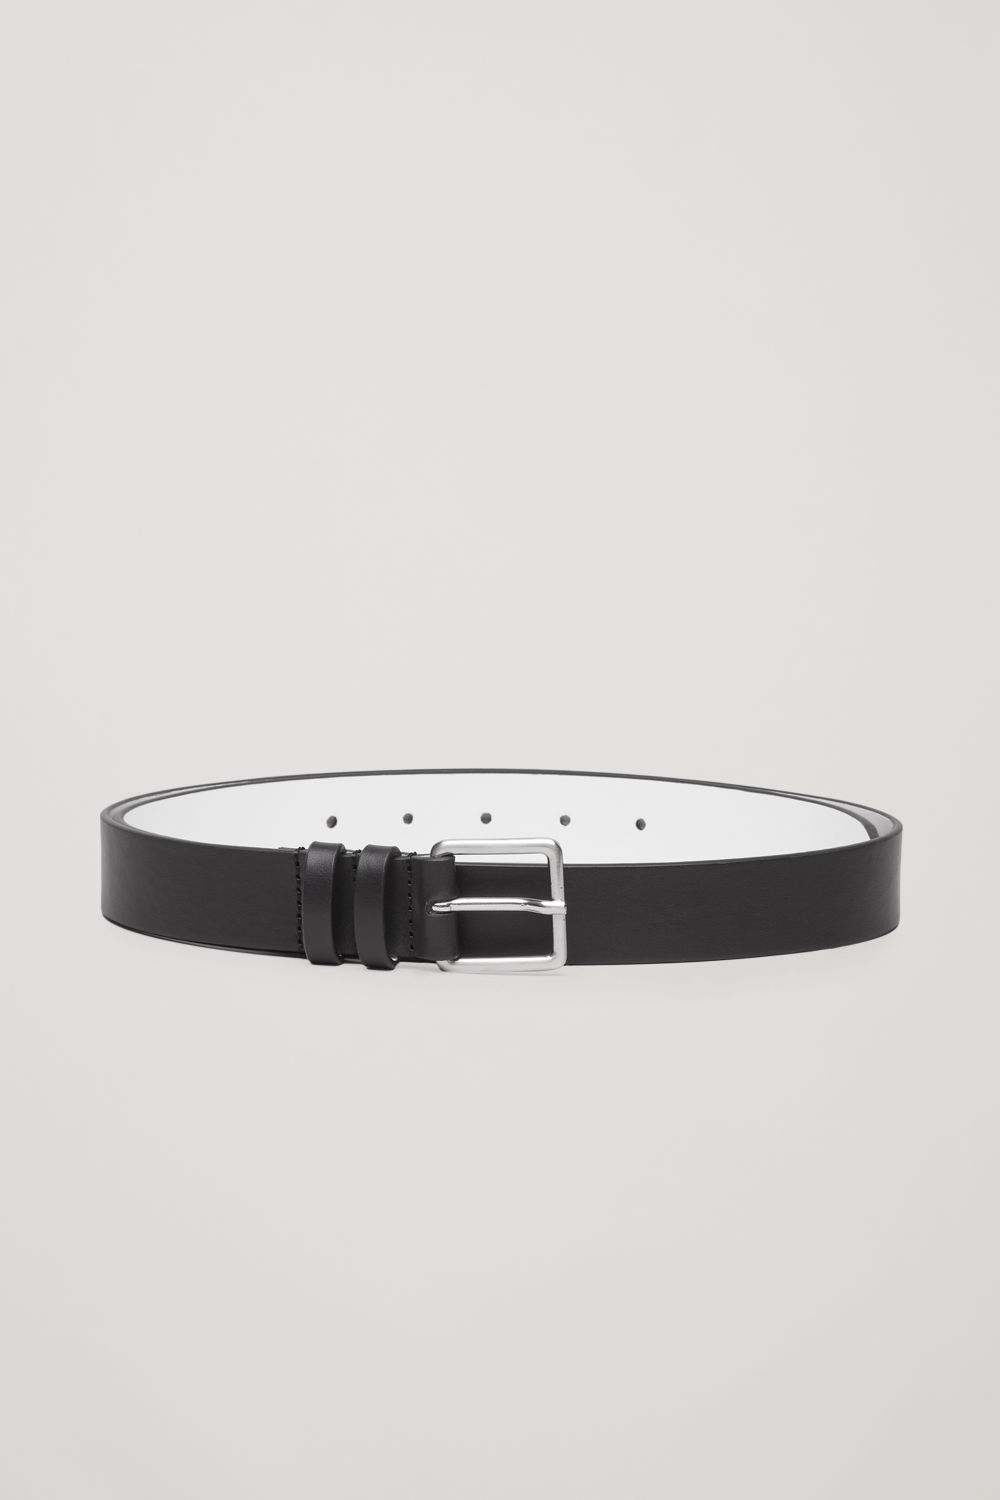 코스 COS CONTRAST LEATHER BELT,Black \/ white